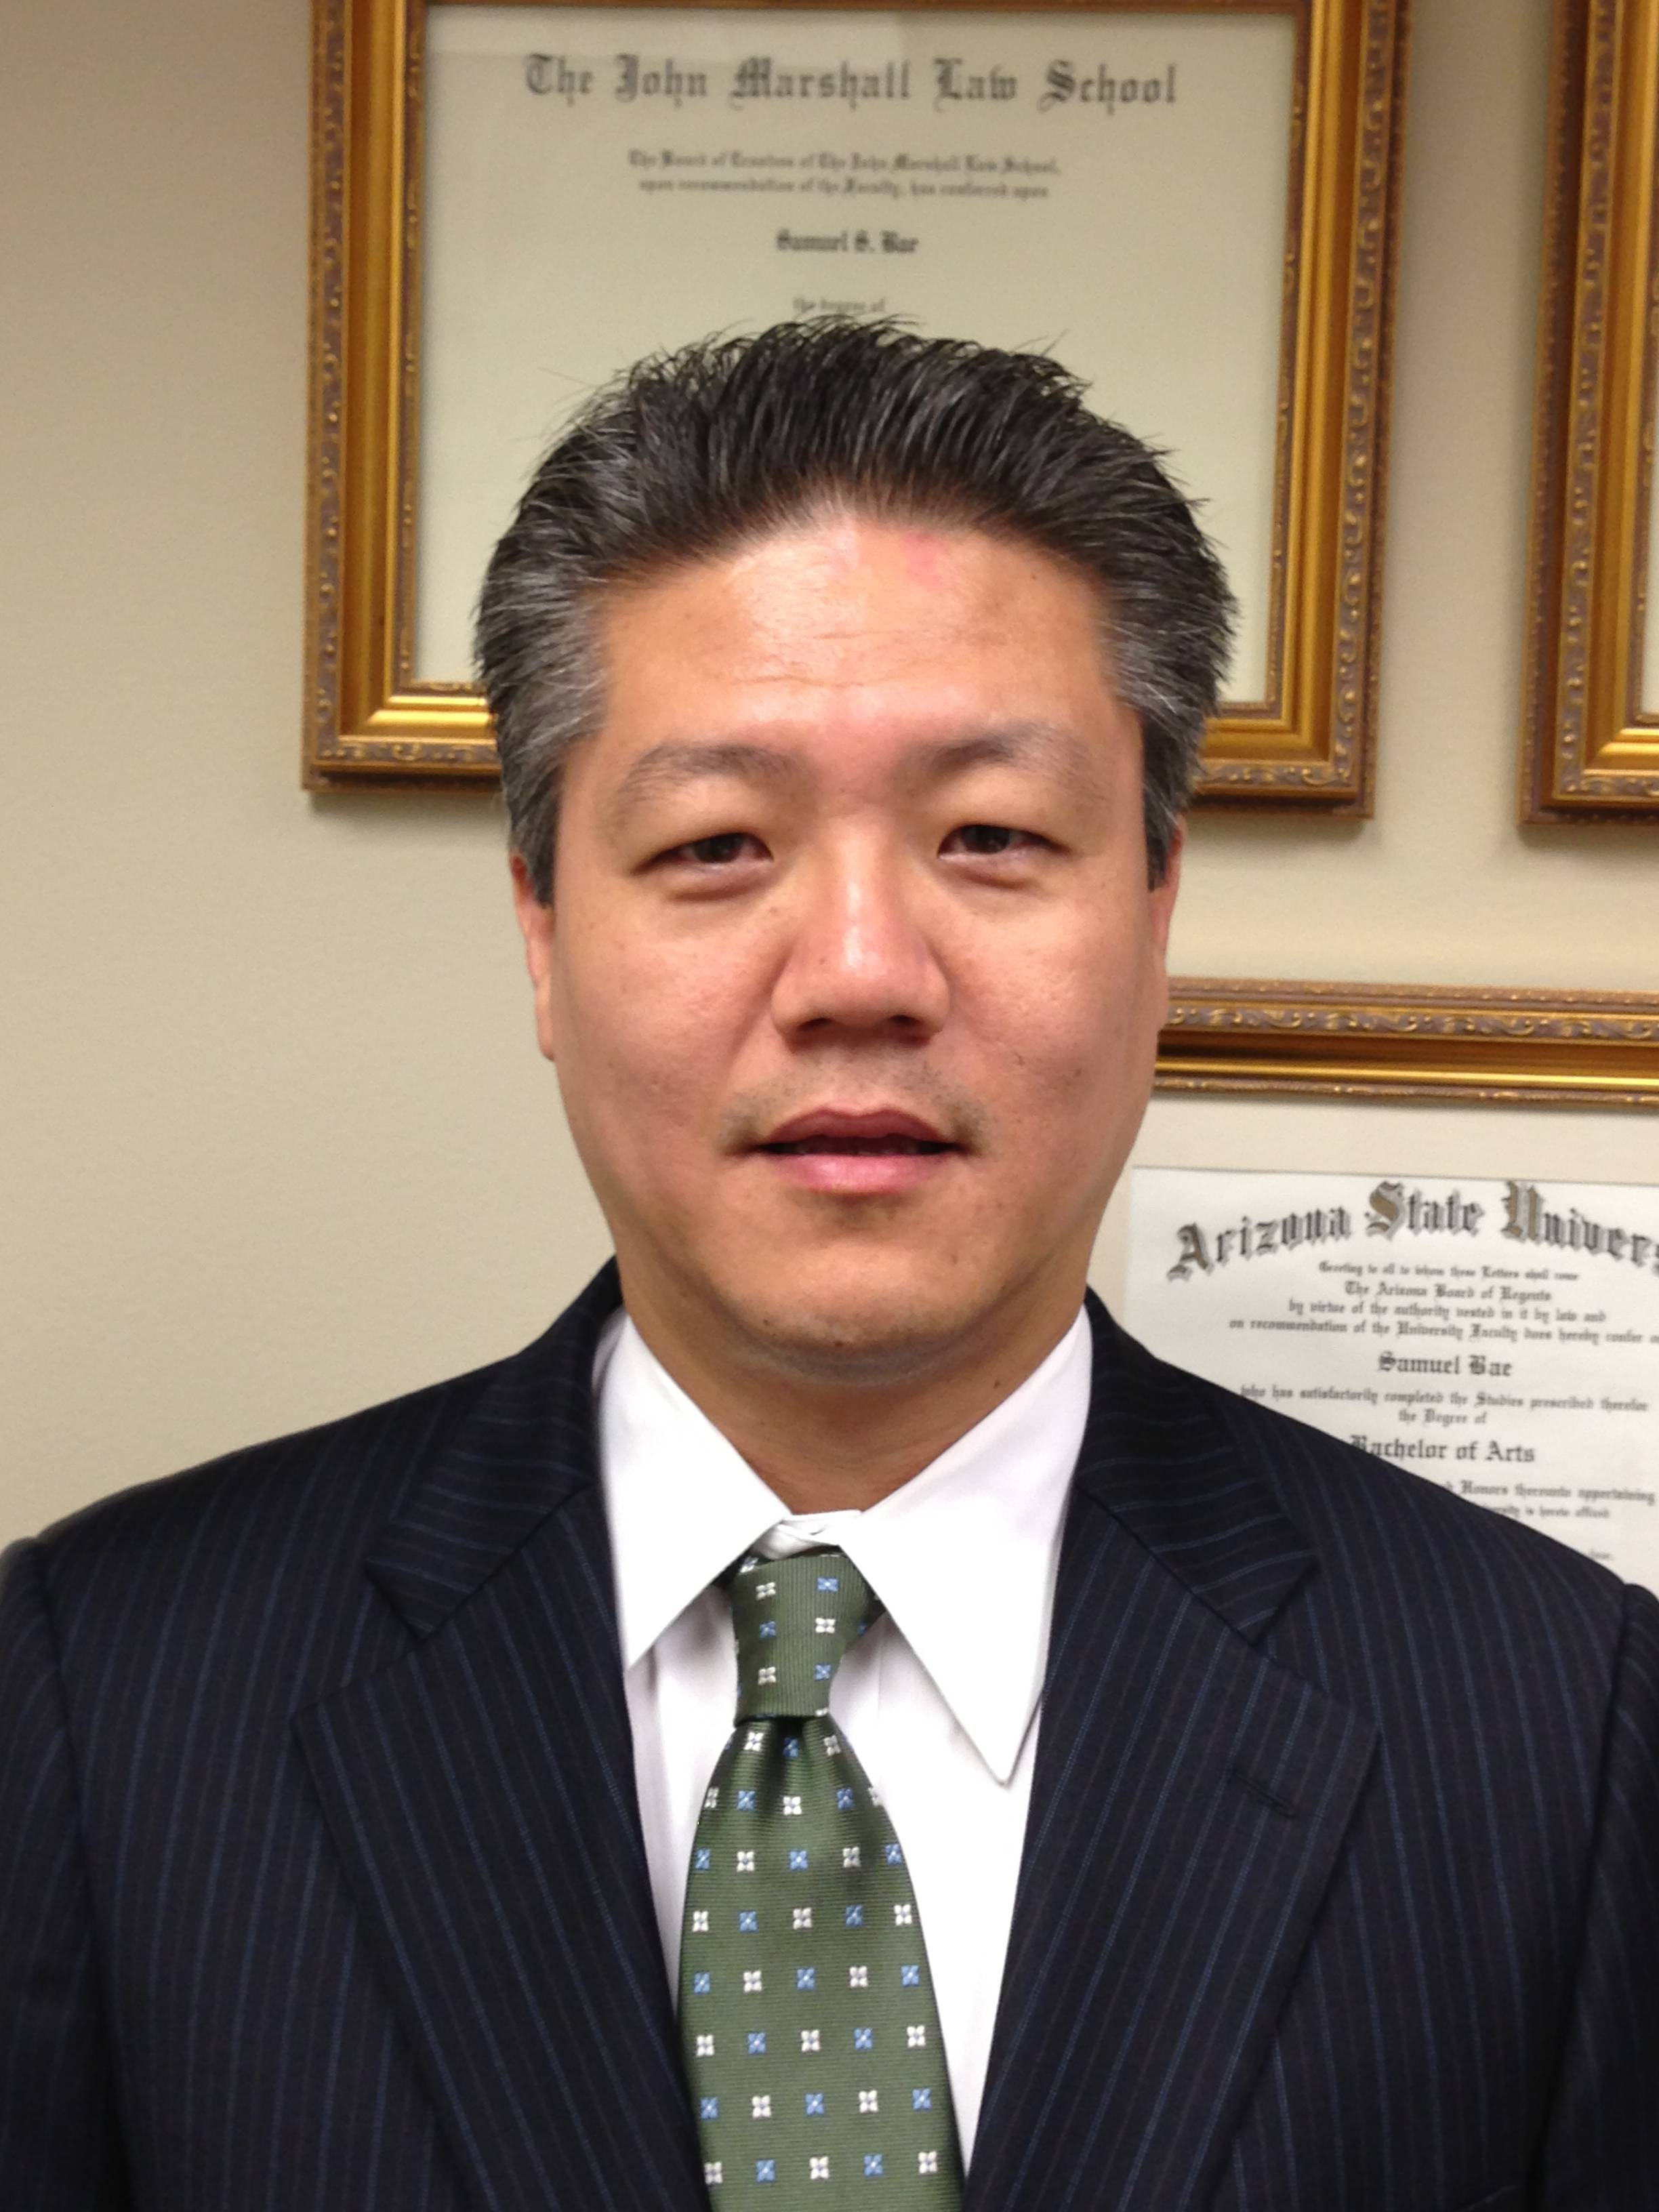 Samuel Bae, running for Cook County Circuit Court - 12th subcircuit